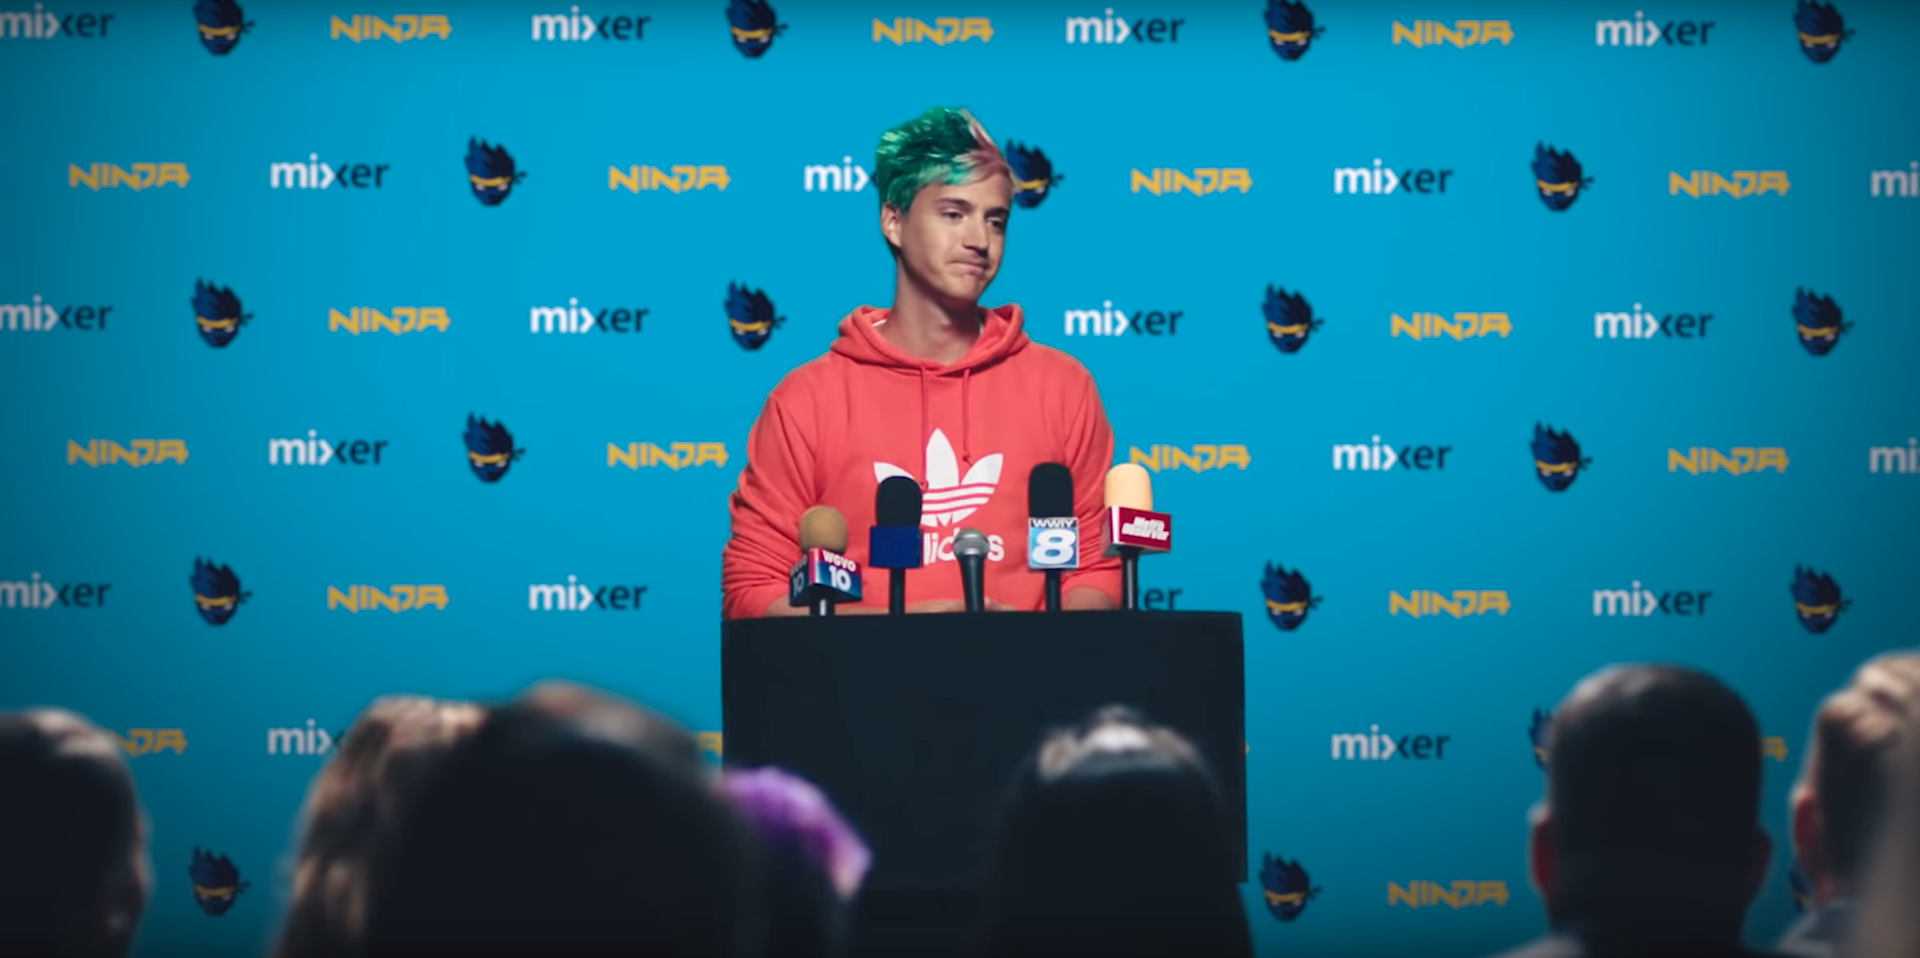 Facebook were reportedly unsuccessful in luring Ninja, and fellow Mixer star Shroud, to their gaming platform.